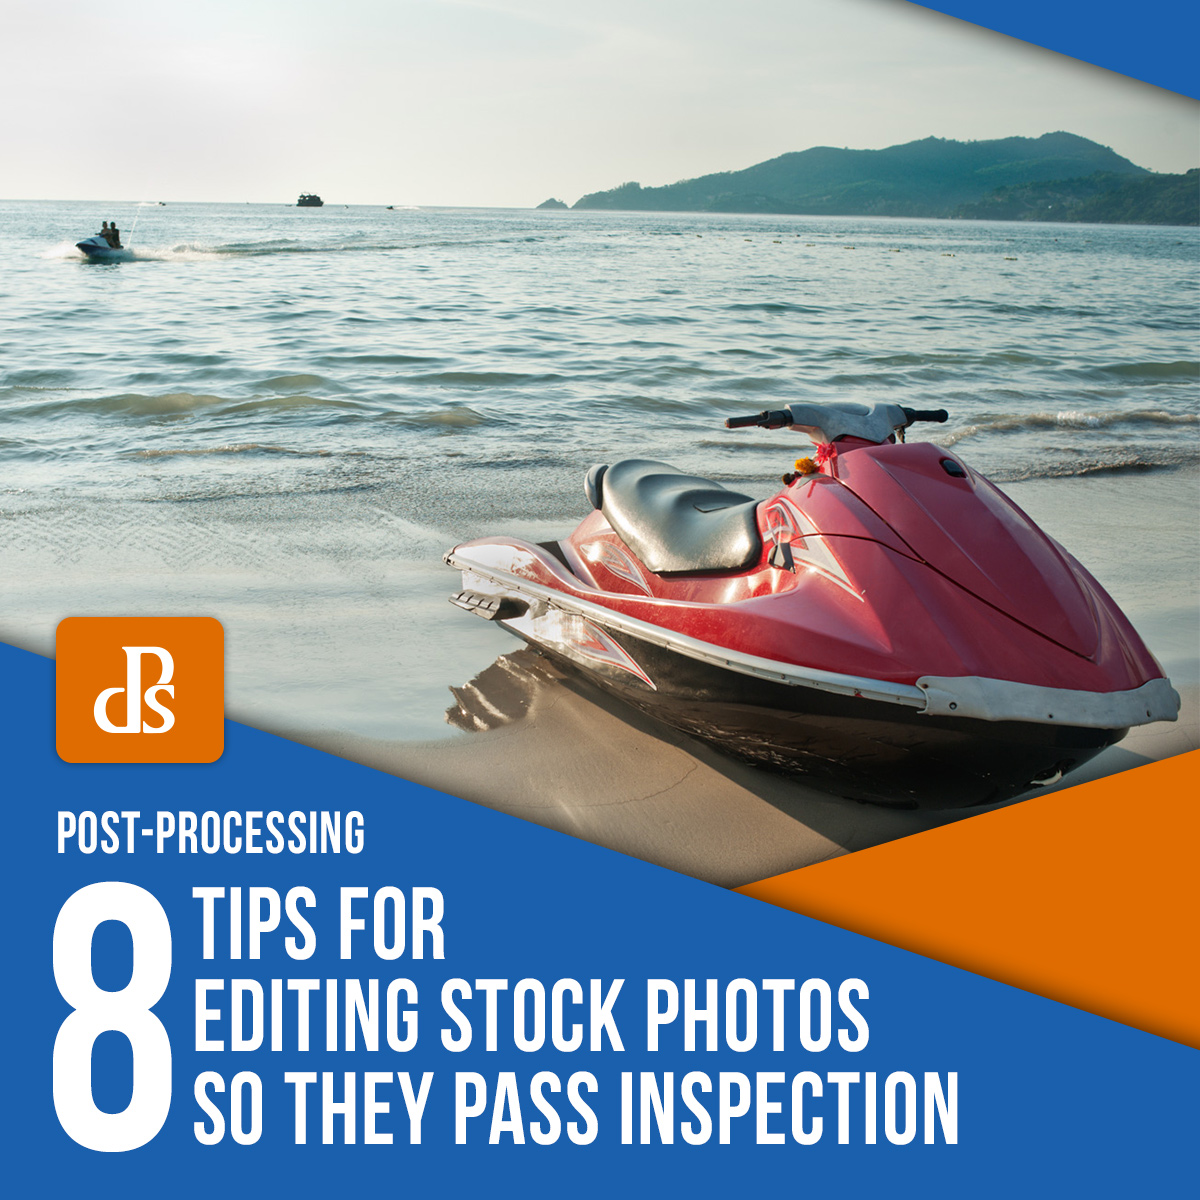 dps-tips-for-editing-stock-photos